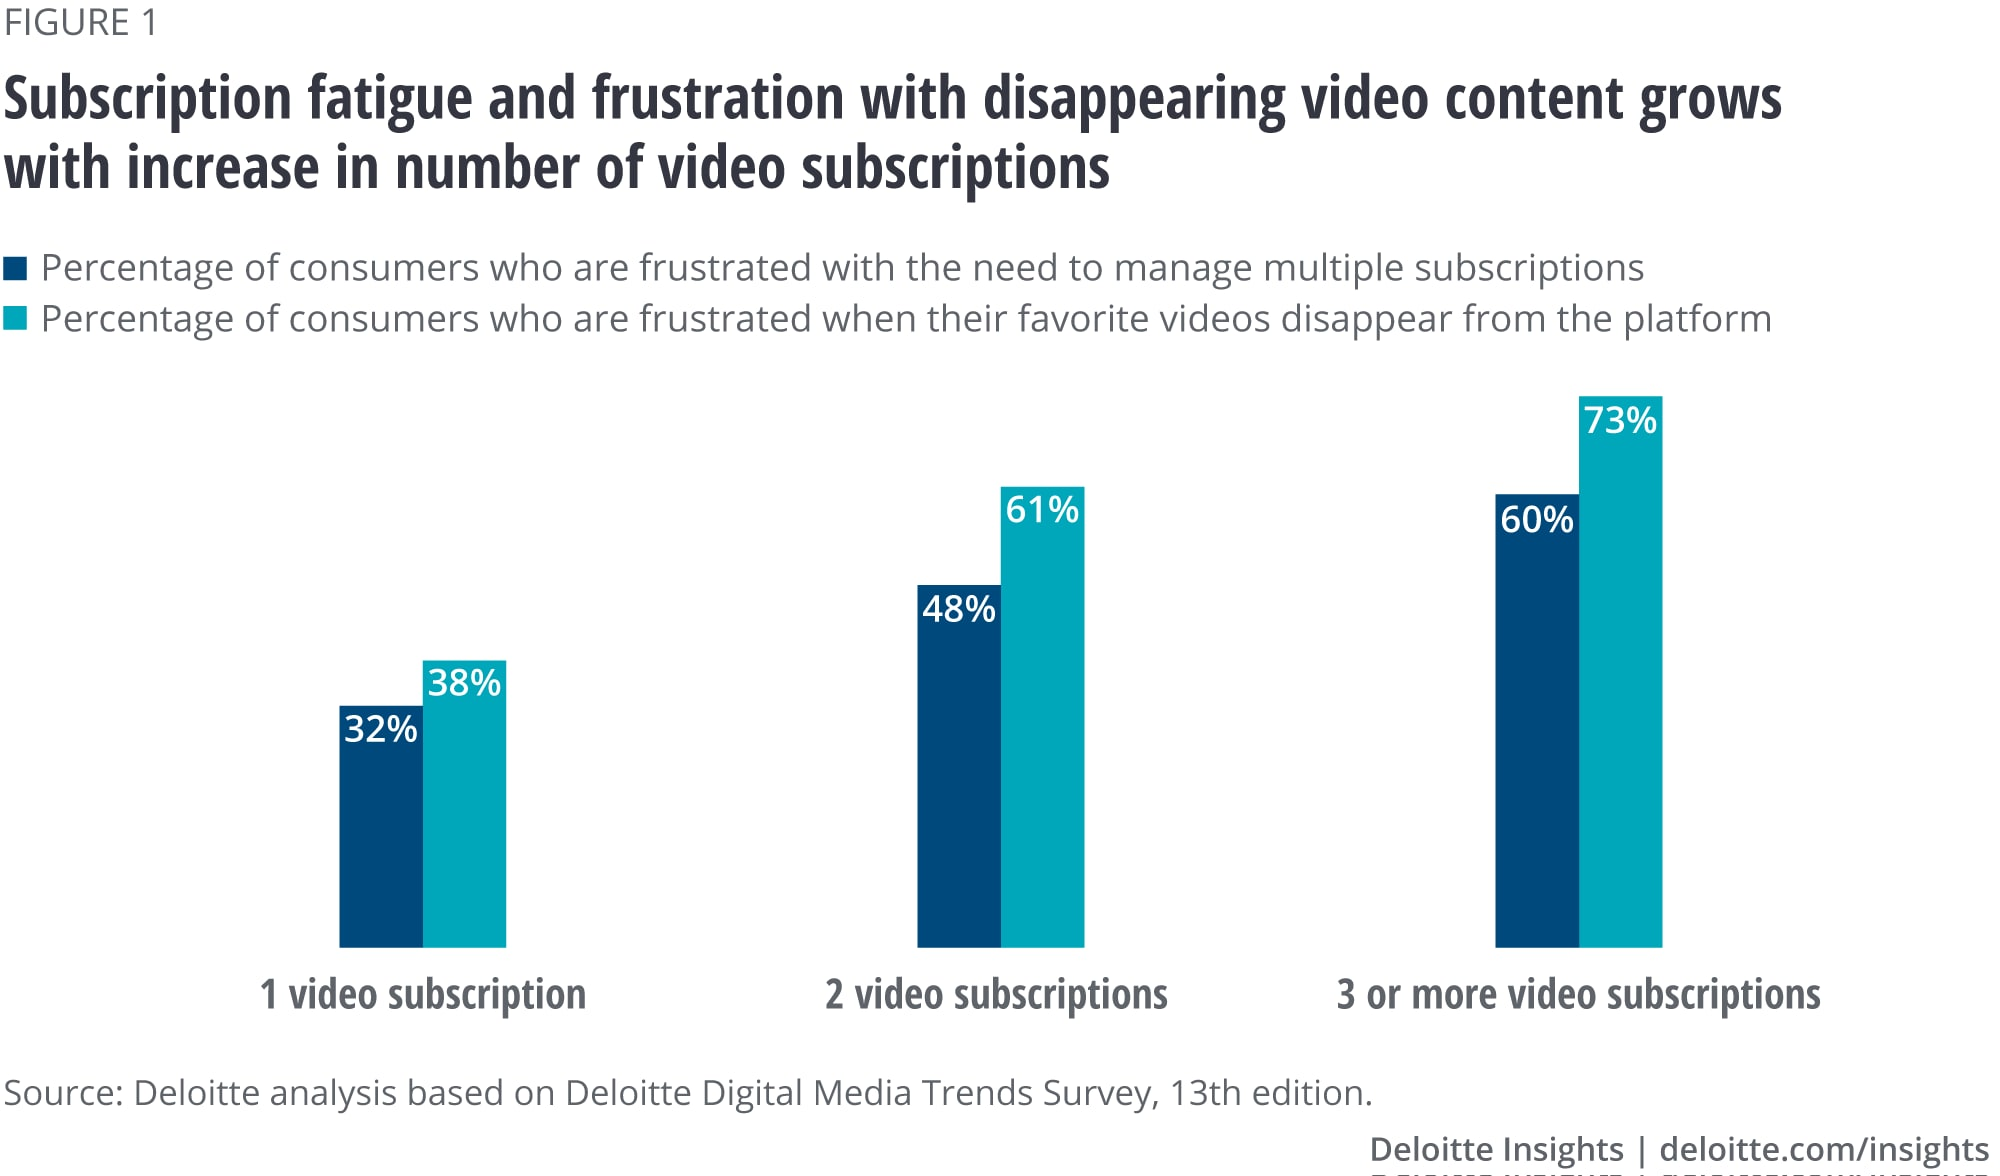 Subscription fatigue and frustration with disappearing video content grows with increase in number of video subscriptions